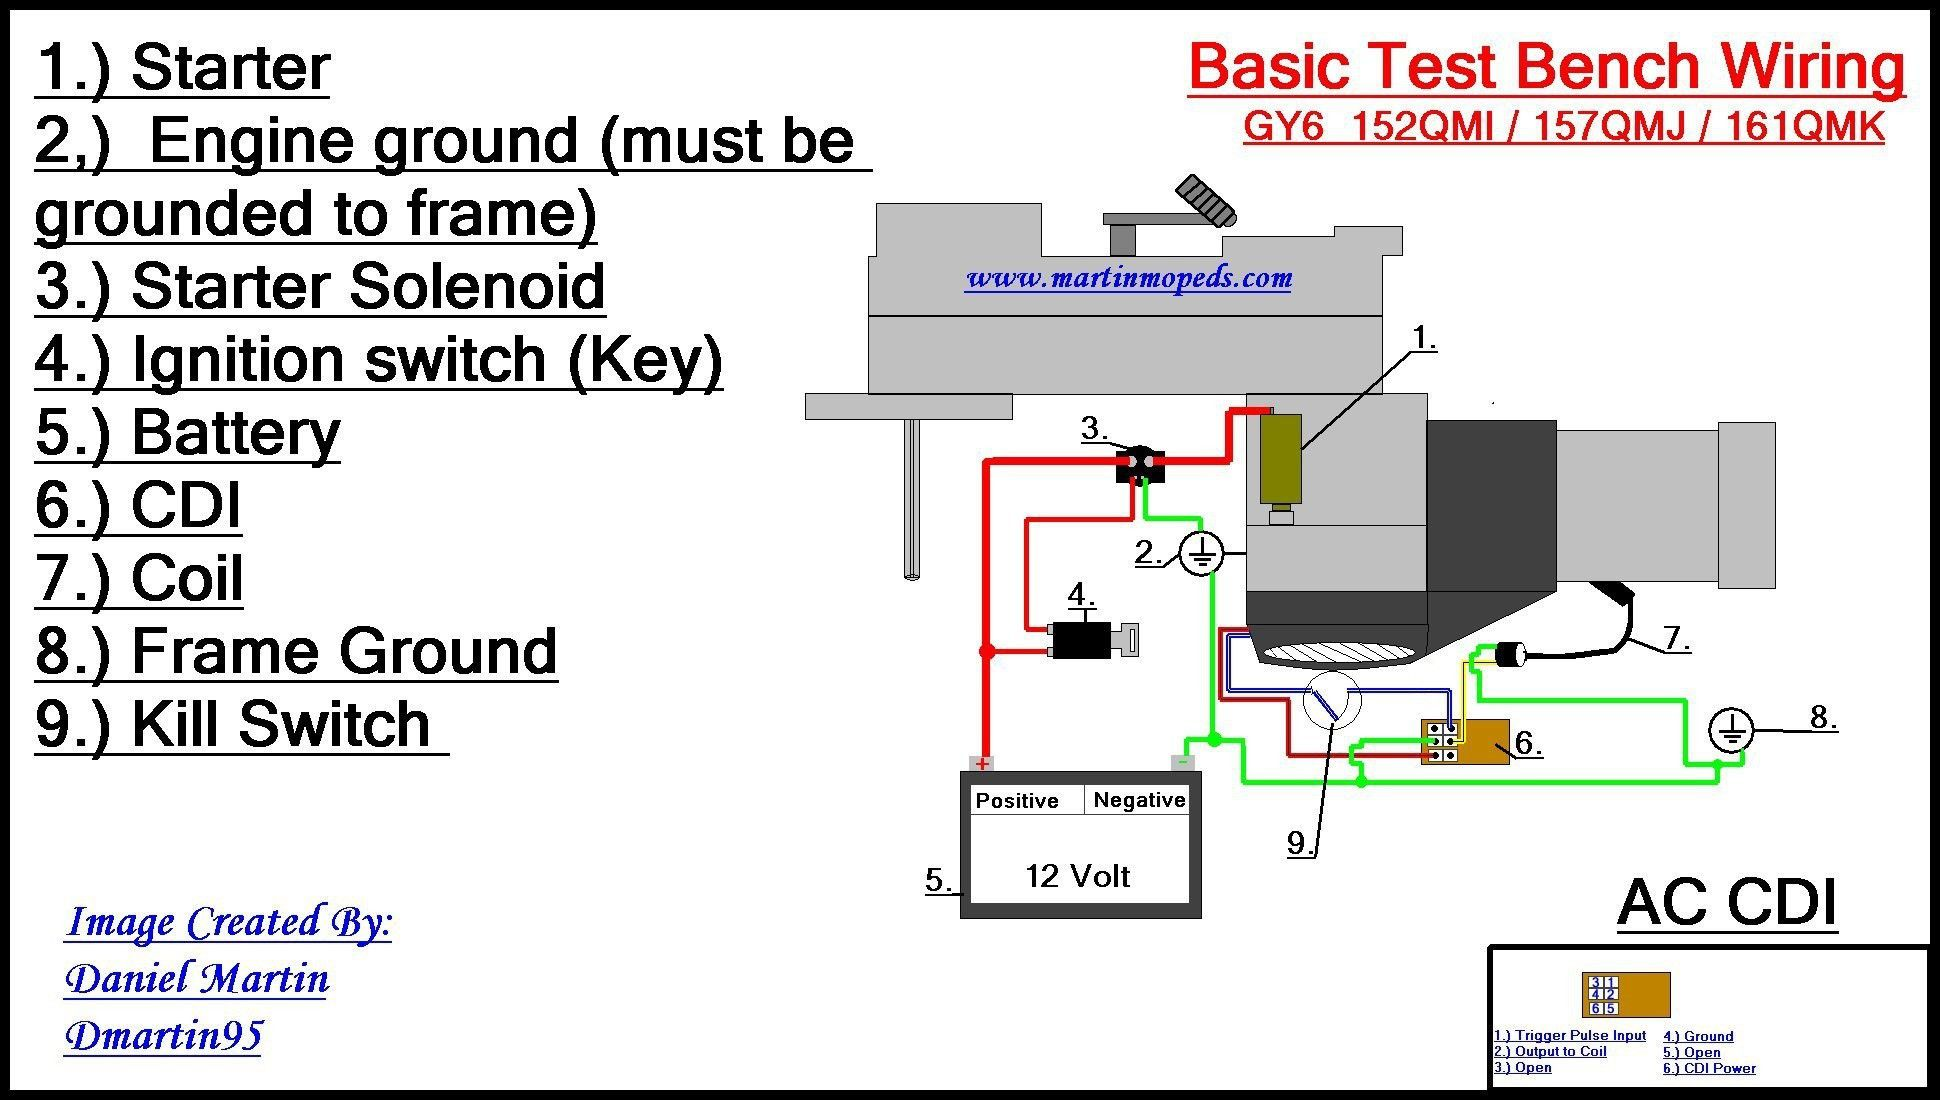 4 Wire Ignition Switch Schematic Diagram | Wiring Diagram  Prong Ignition Switch Wiring Diagram on 2 prong switch wiring diagram, 3 prong switch wiring diagram, 5 prong switch wiring diagram,